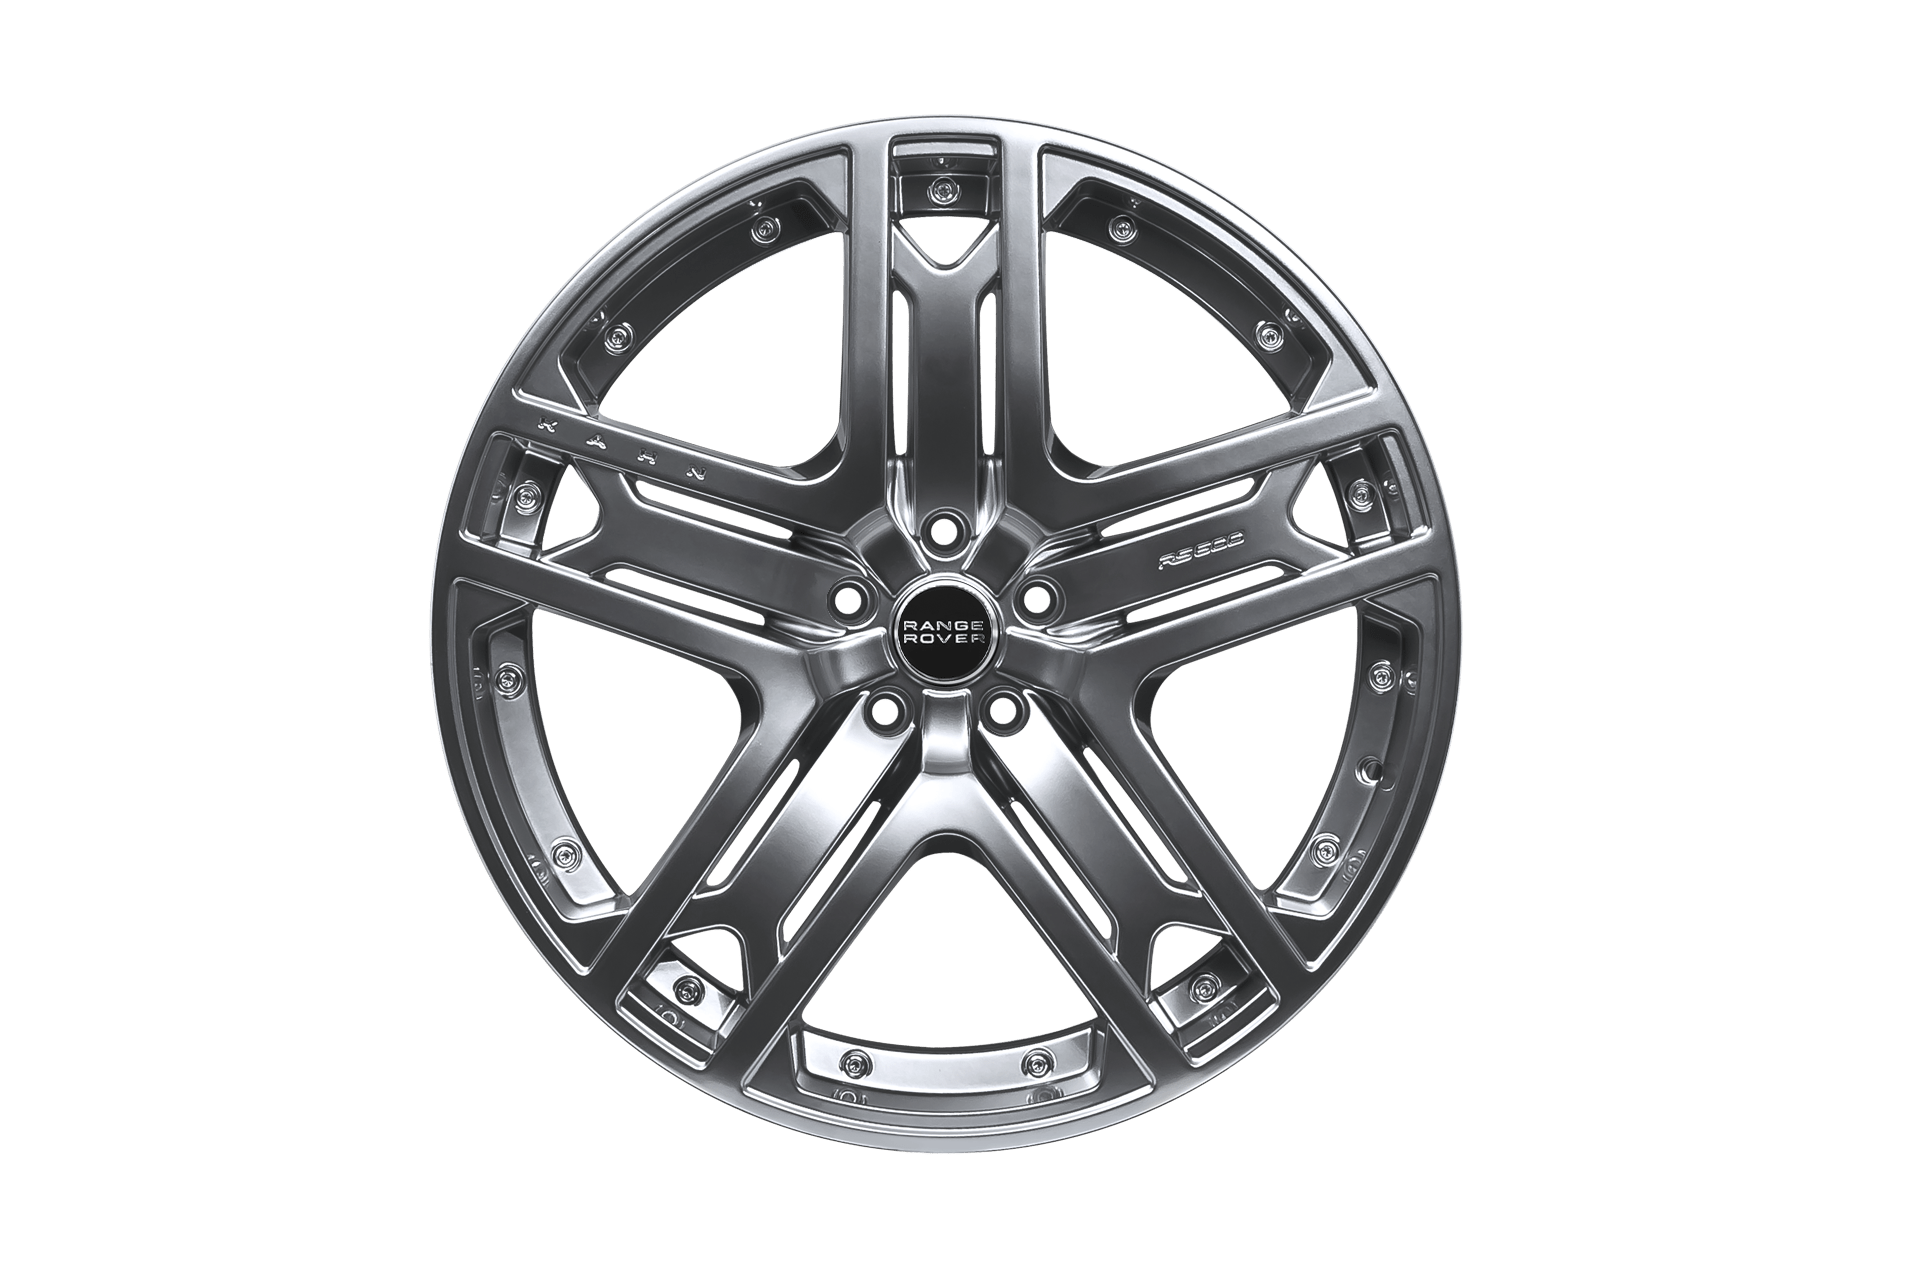 Range Rover Sport (2018-Present) Rs600 Light Alloy Wheels by Kahn - Image 2382